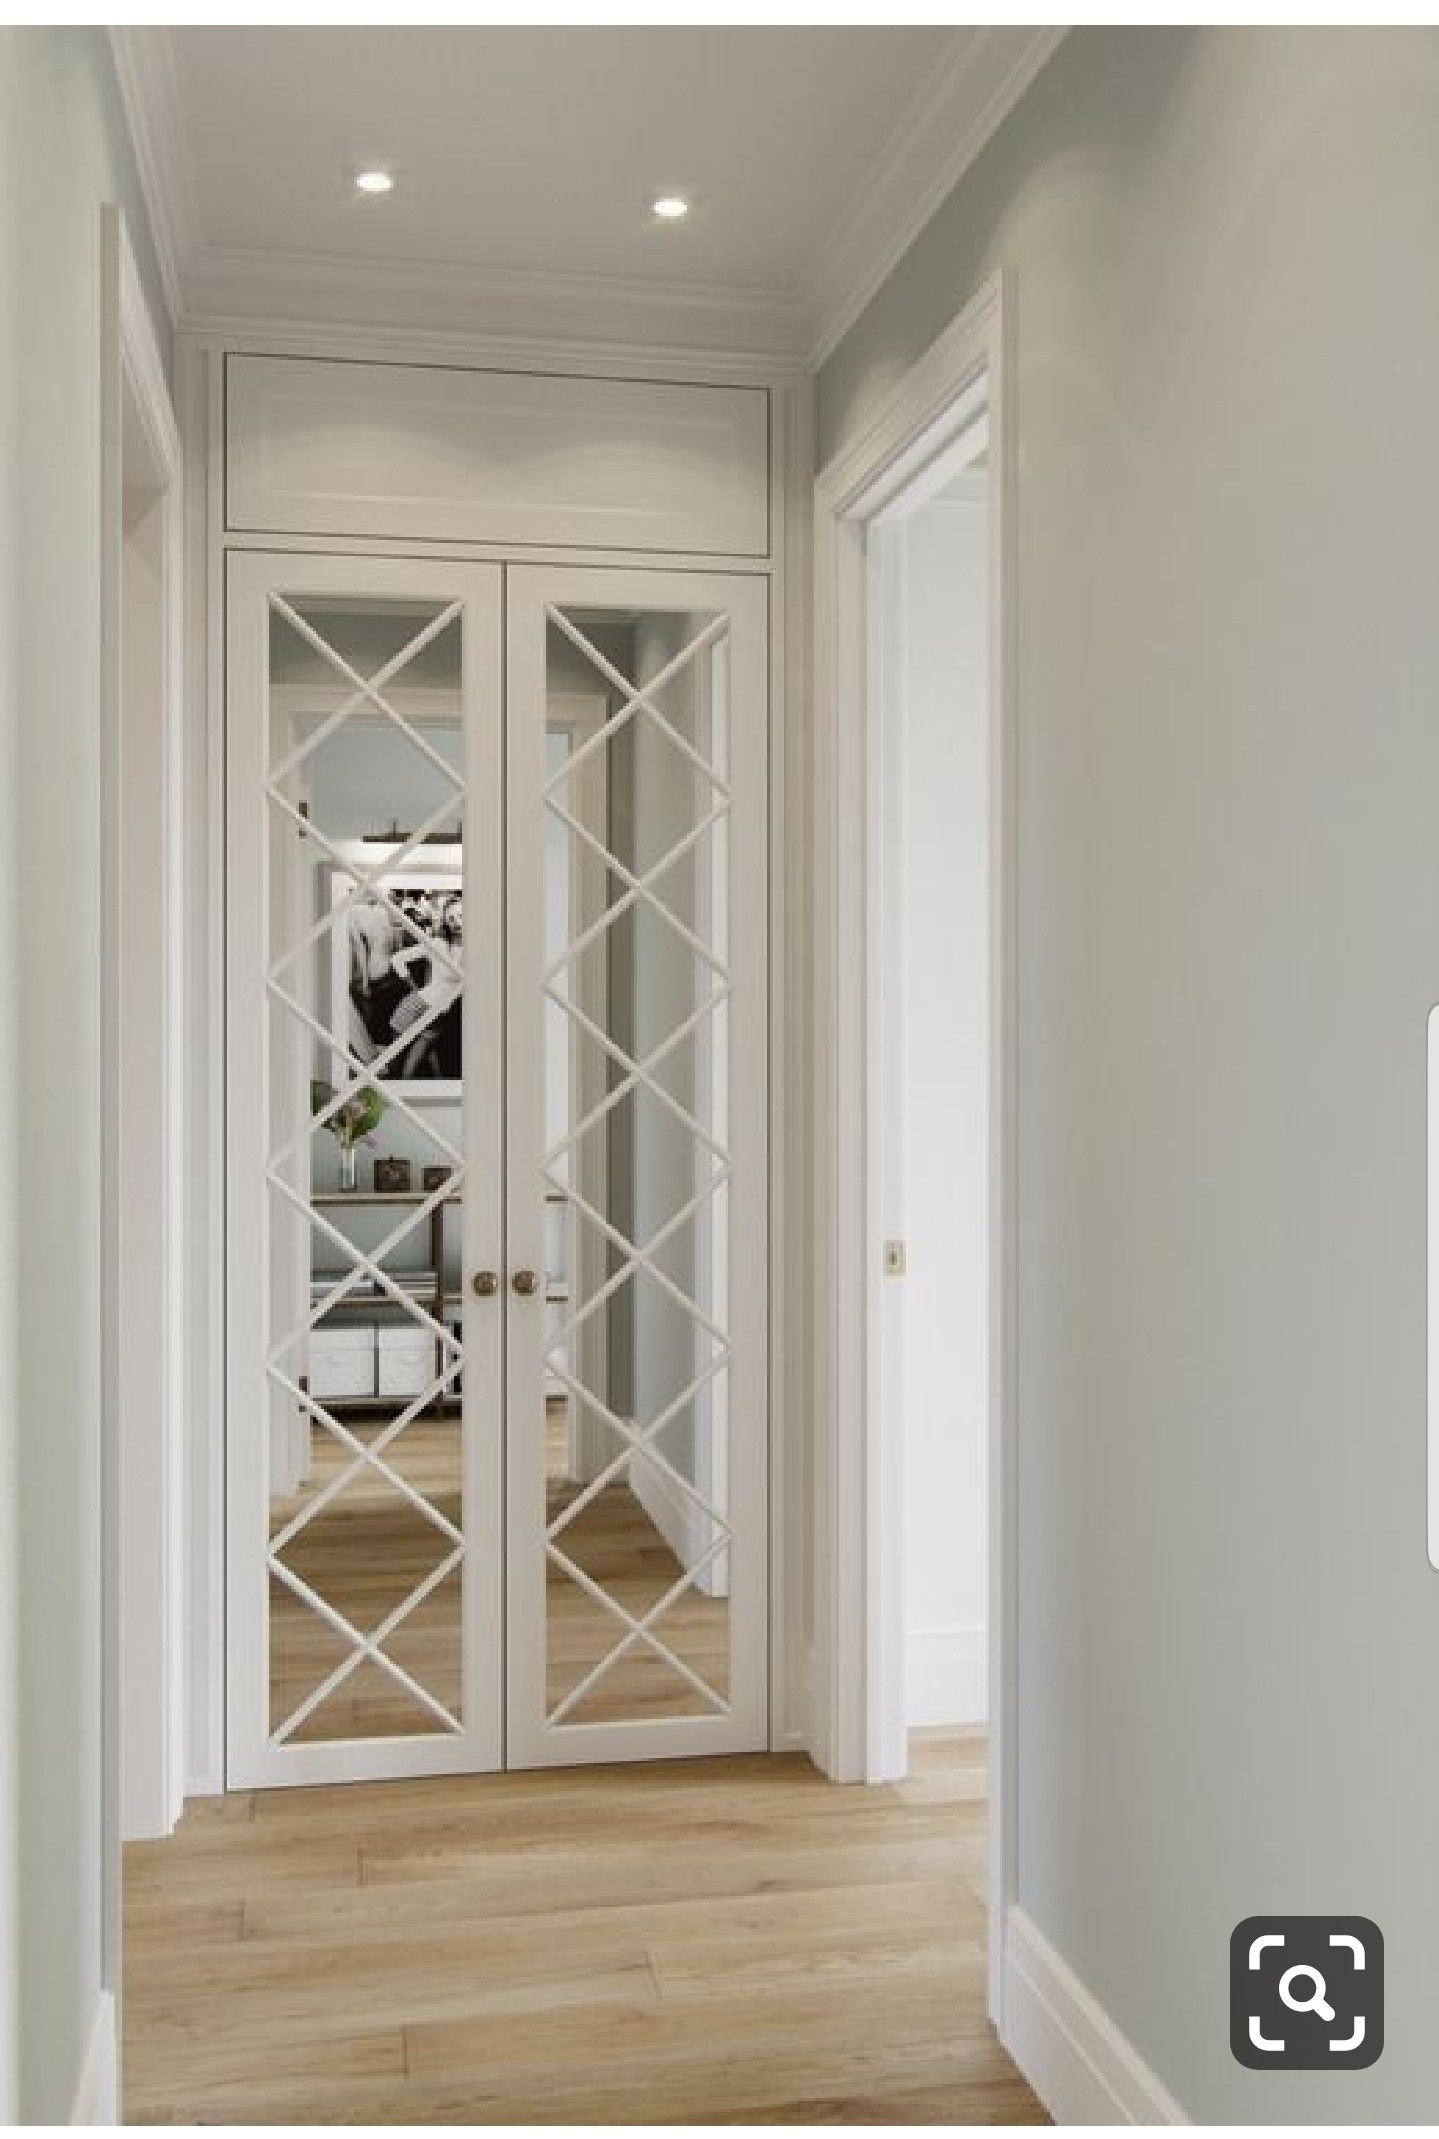 Excellent Proportions On These White French Doors With Mirror And